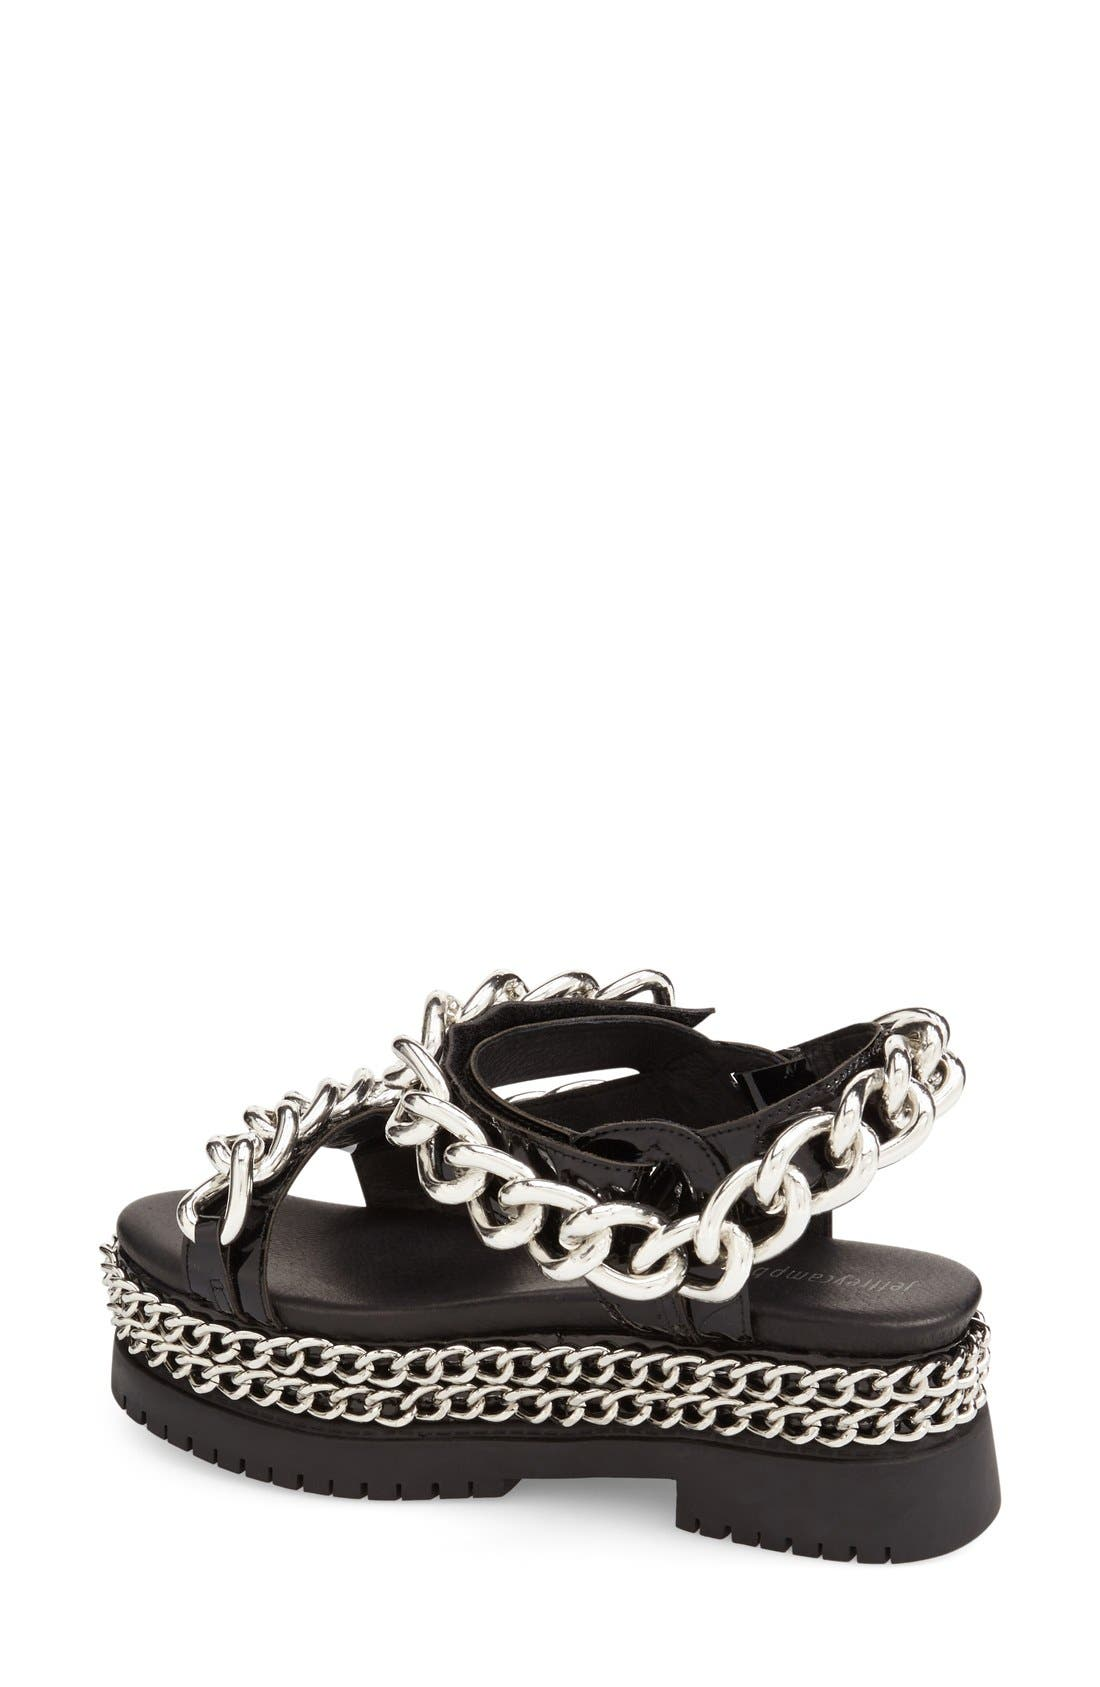 Alternate Image 2  - Jeffrey Campbell 'Mayview' Platform Sandal (Women)